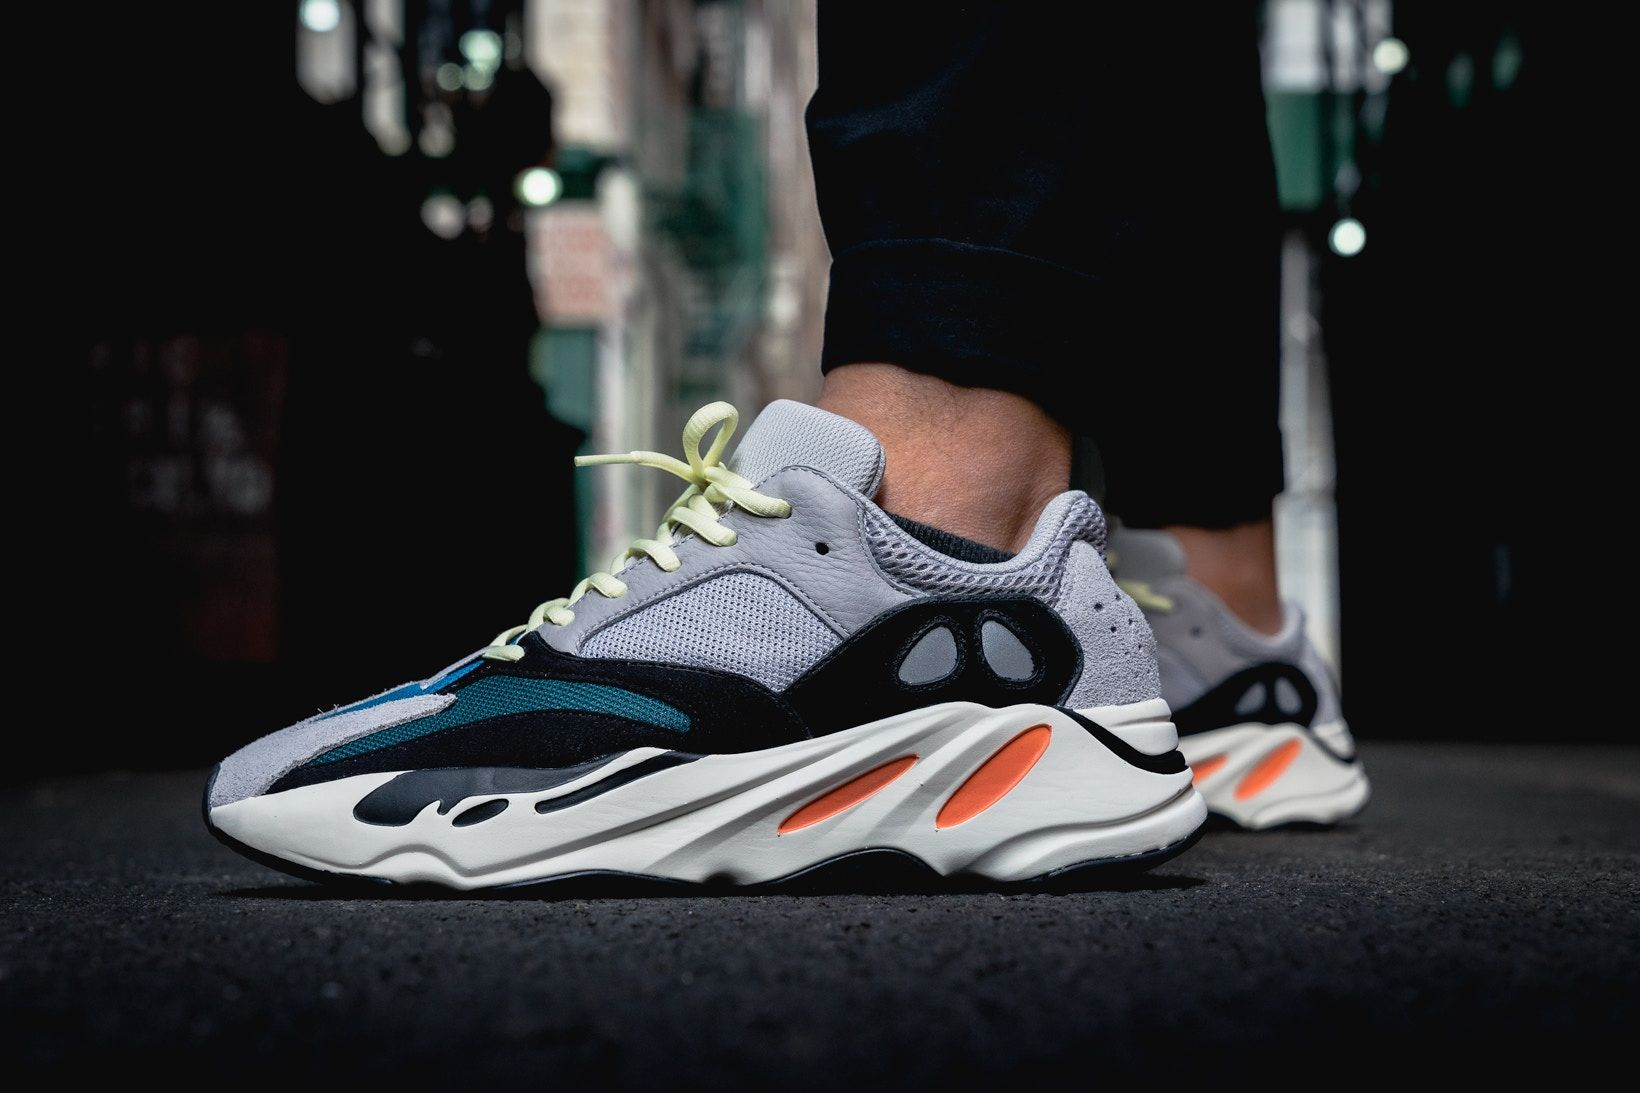 6776d286d adidas YEEZY BOOST 700 On Feet Closer Look Wave Runner Kanye West Kim  Kardashian footwear